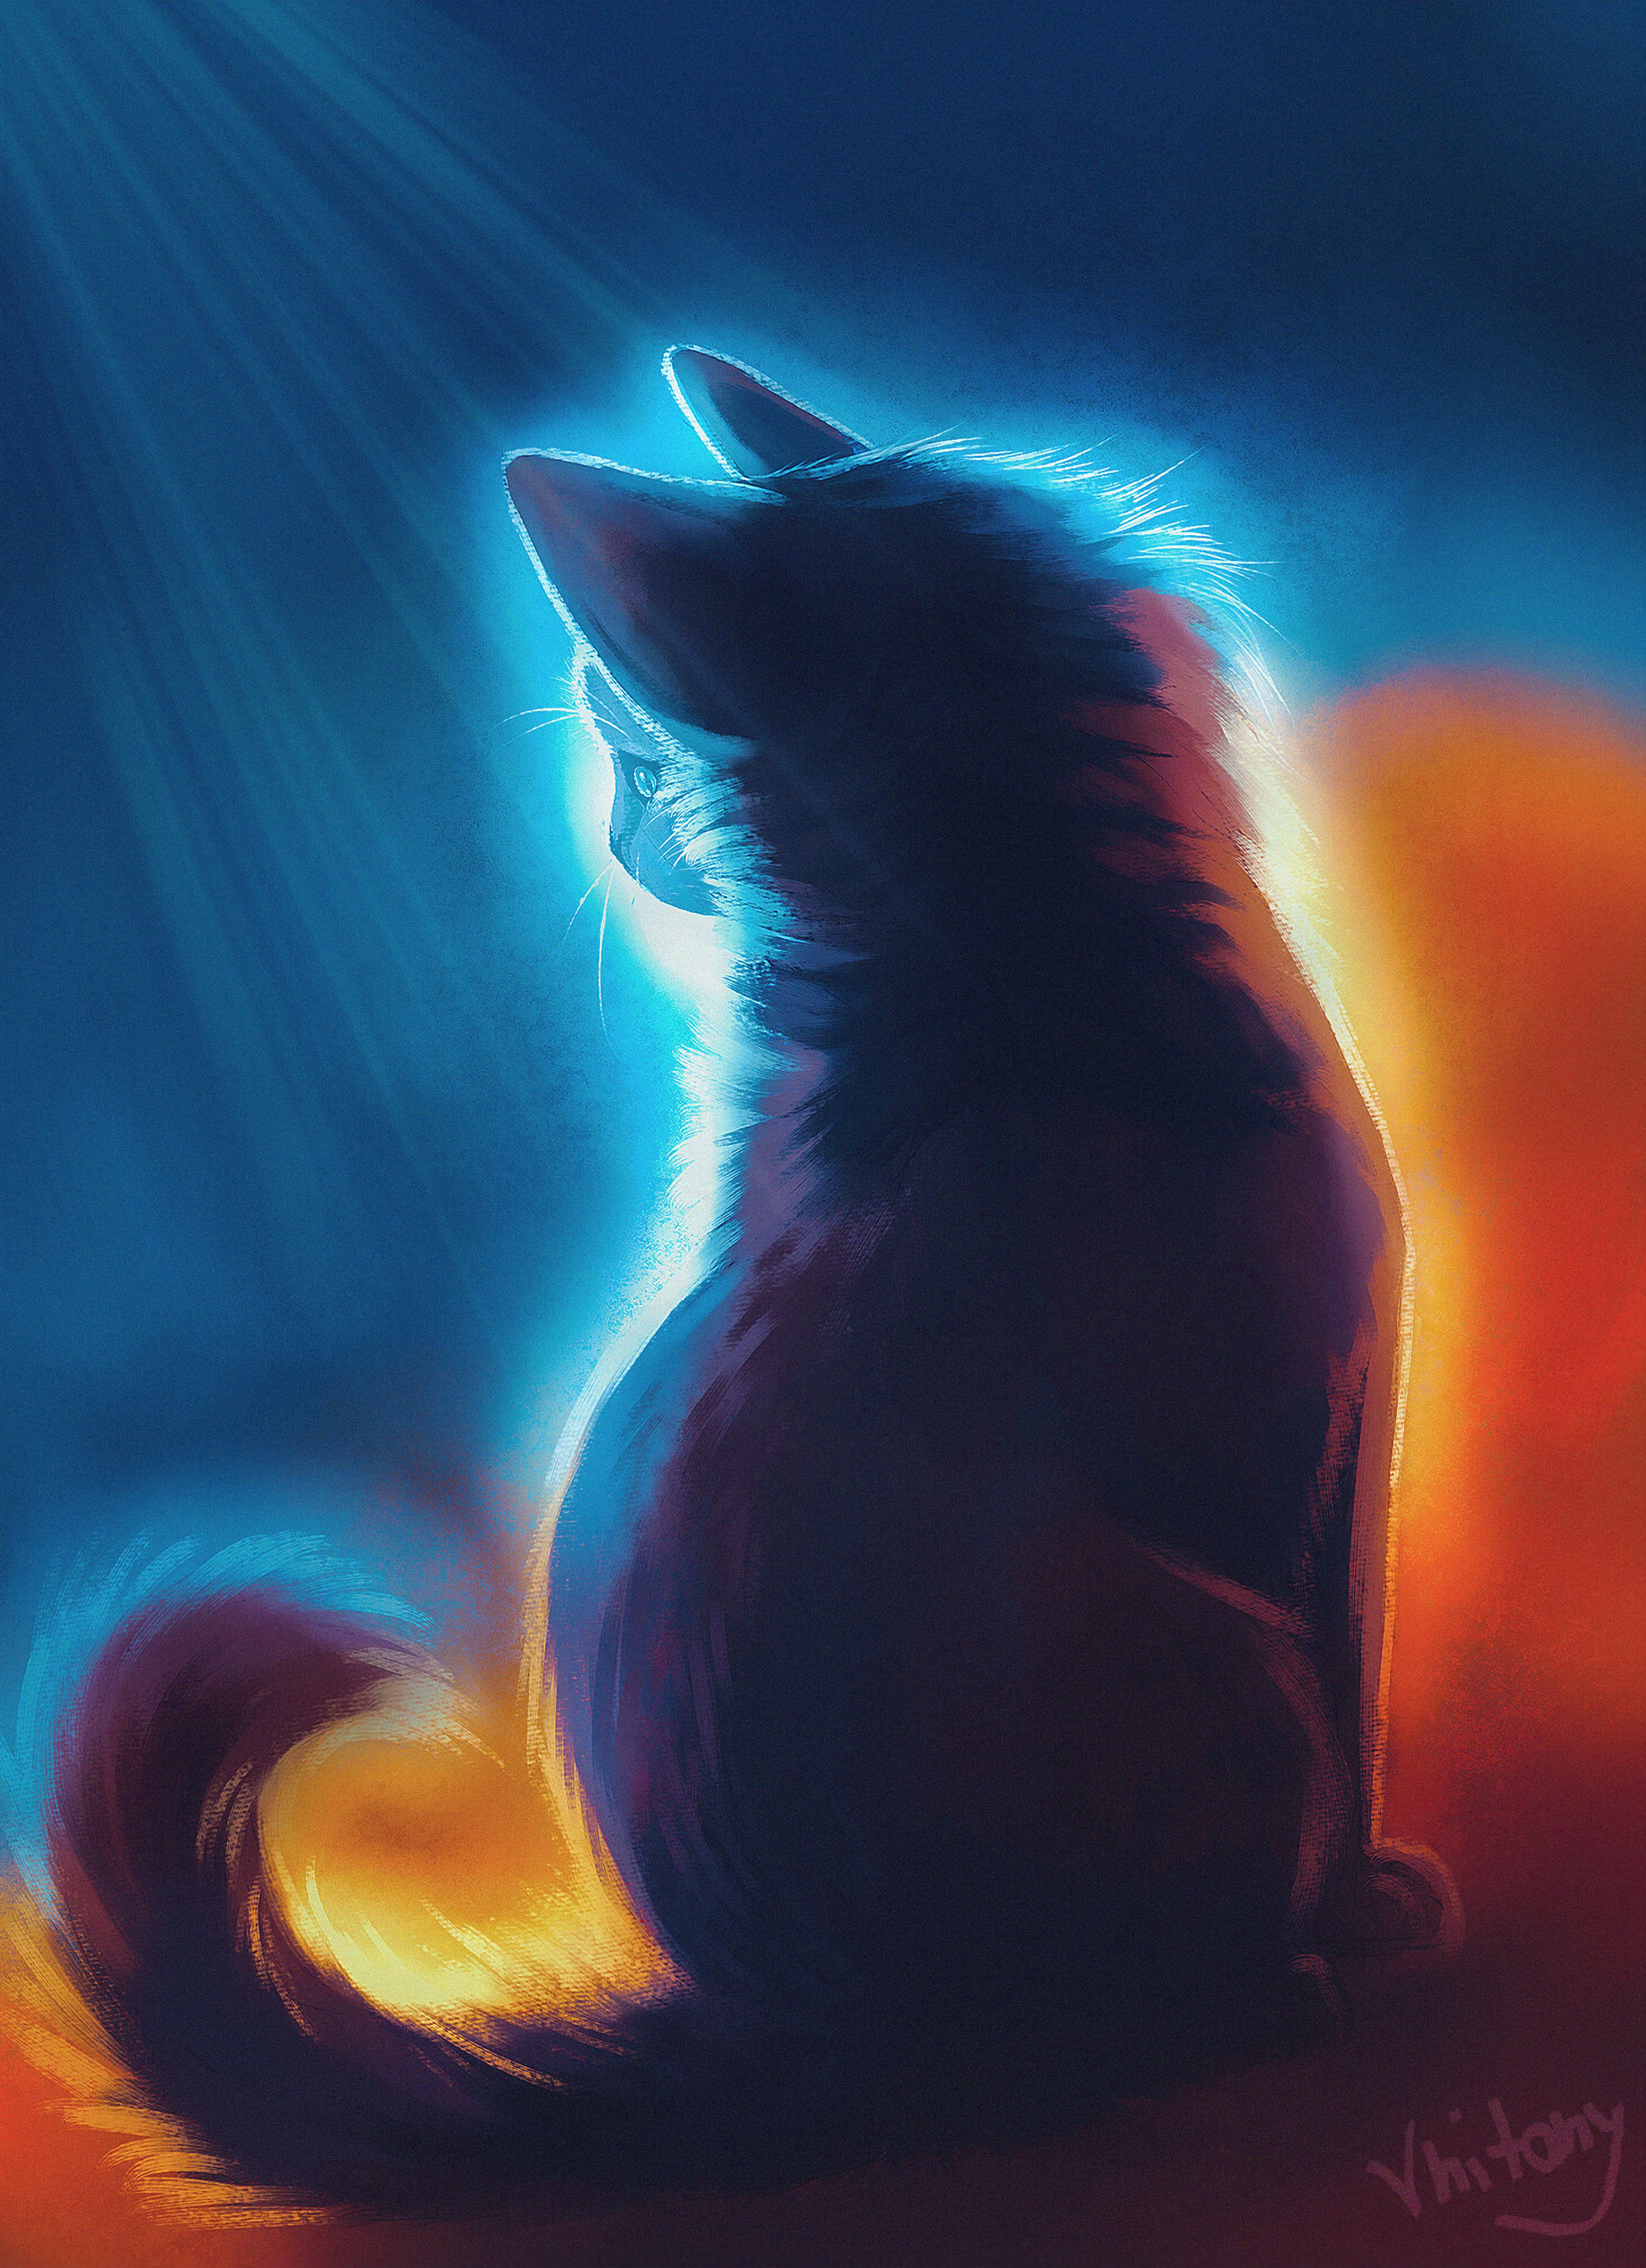 92111 download wallpaper Cat, Art, Shine, Light, Beams, Rays, Glow screensavers and pictures for free